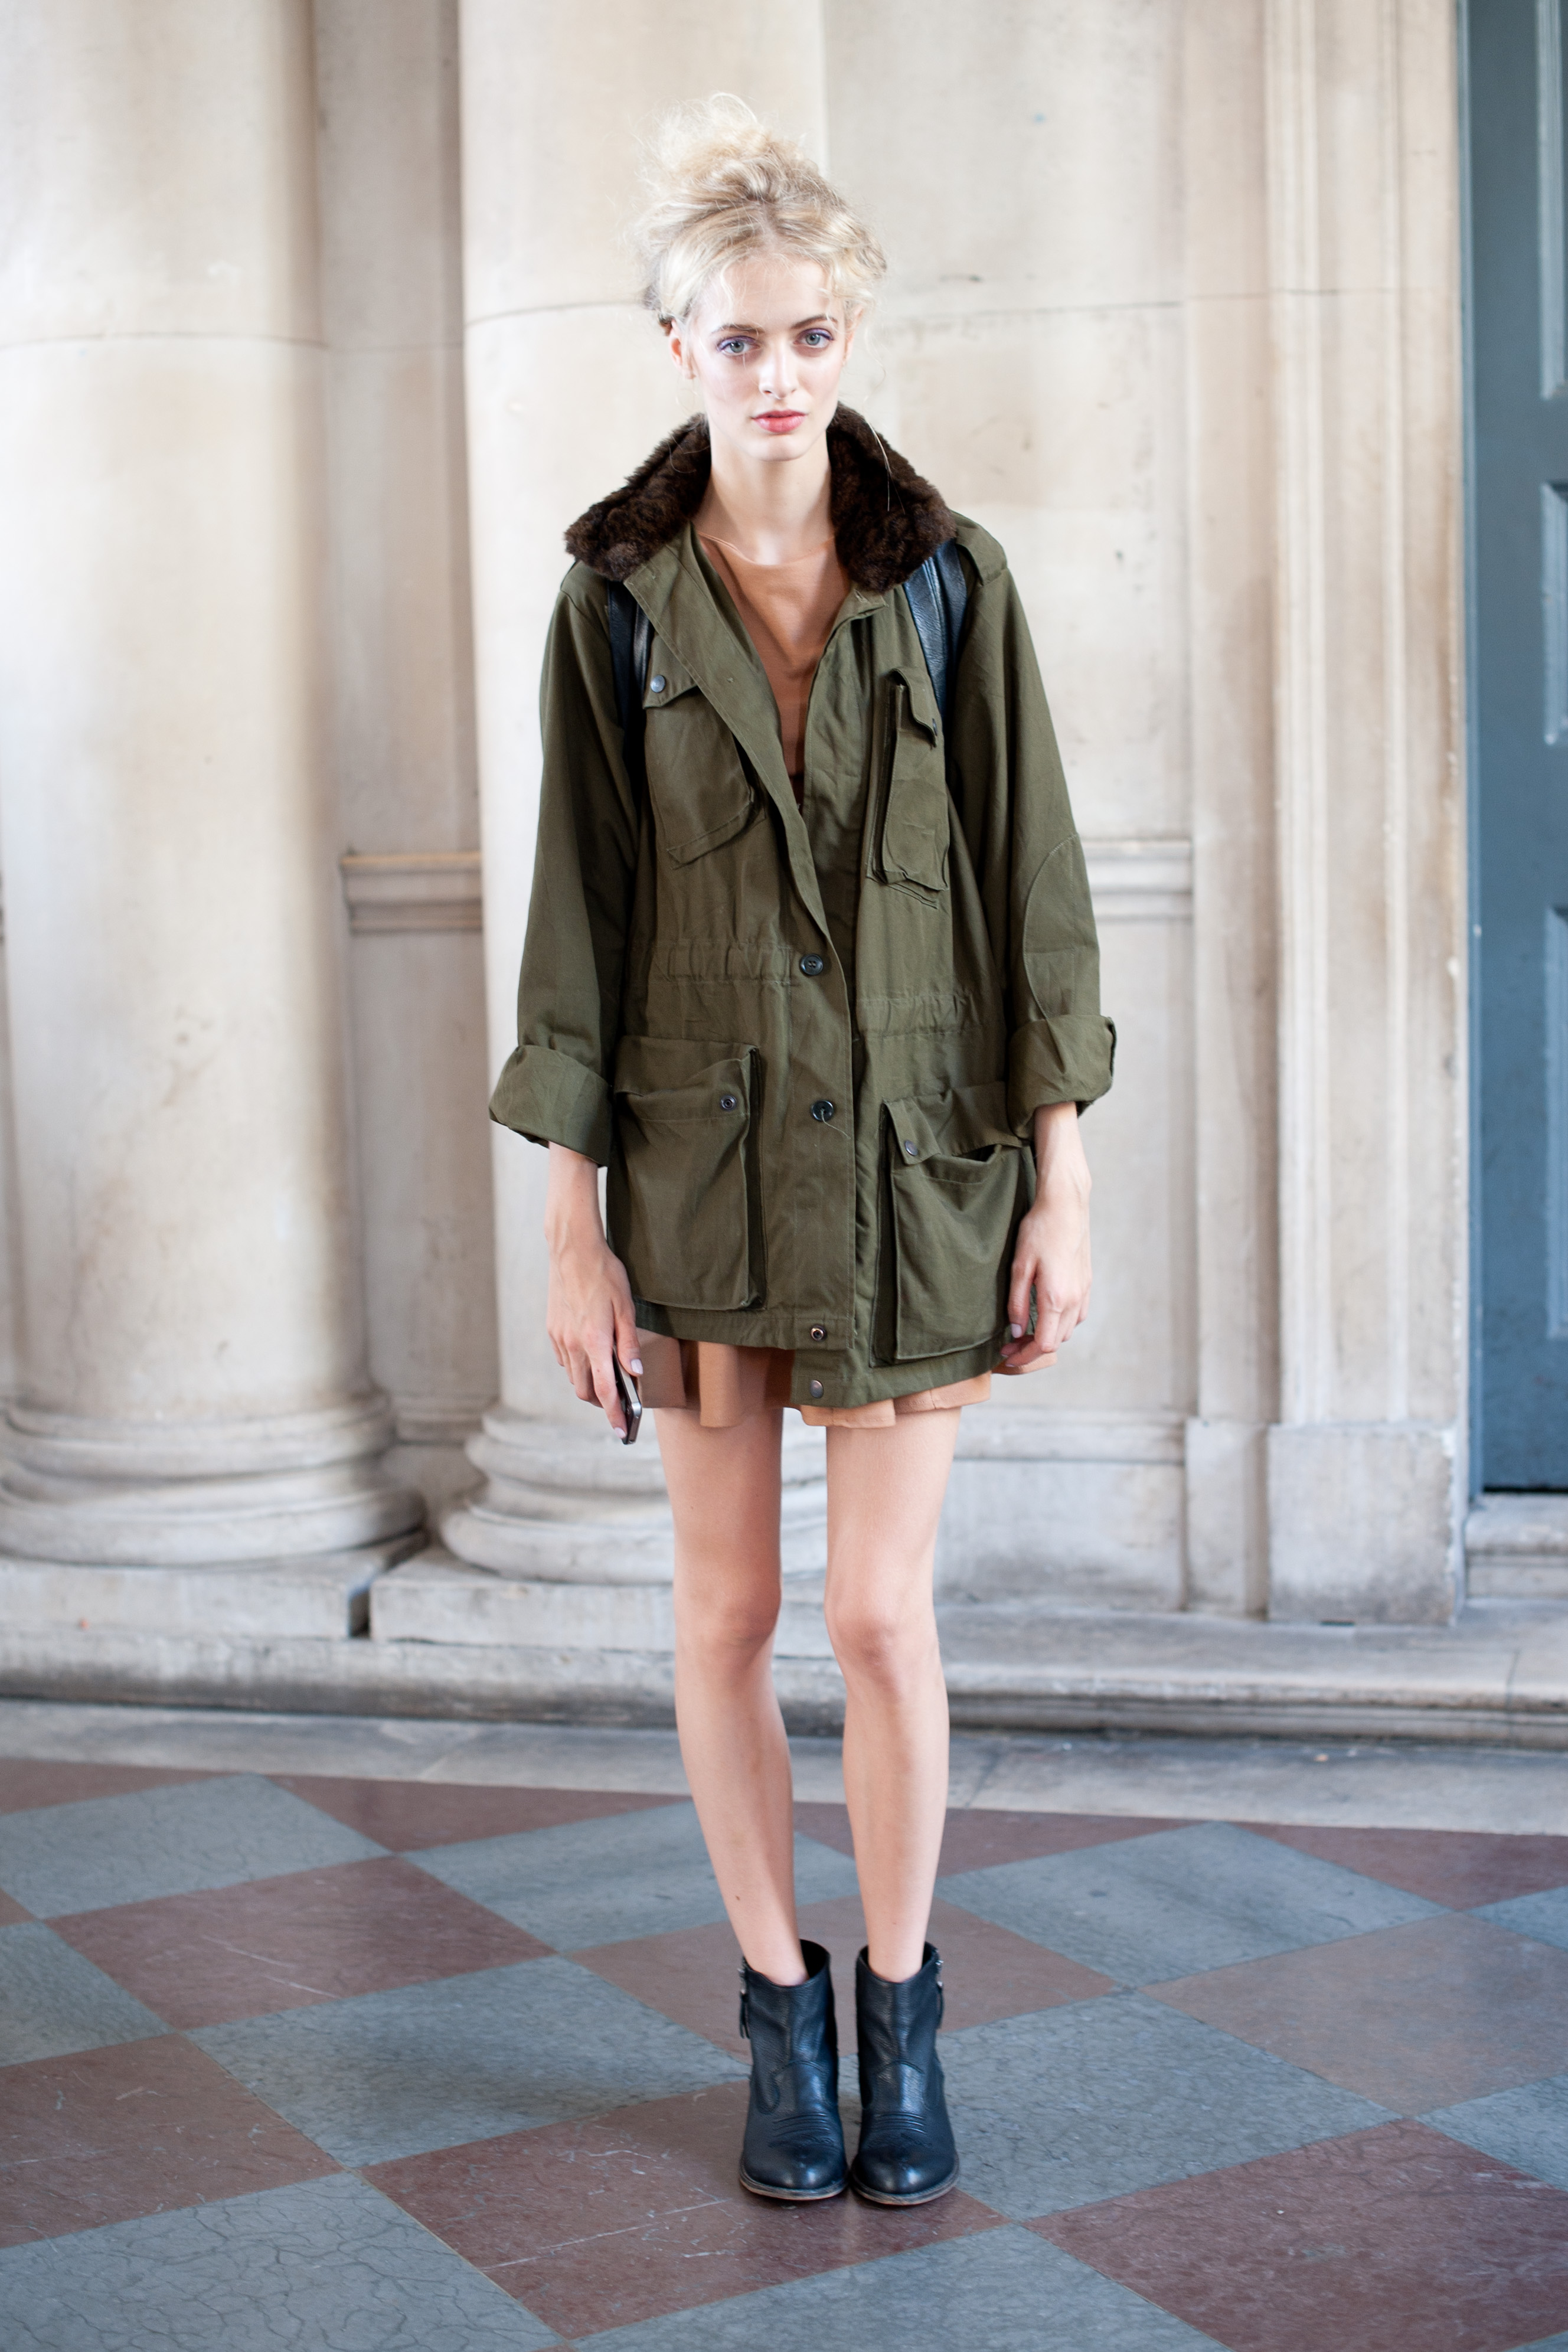 When in doubt, an olive green parka will solve your chilly-day style problems. Promise.